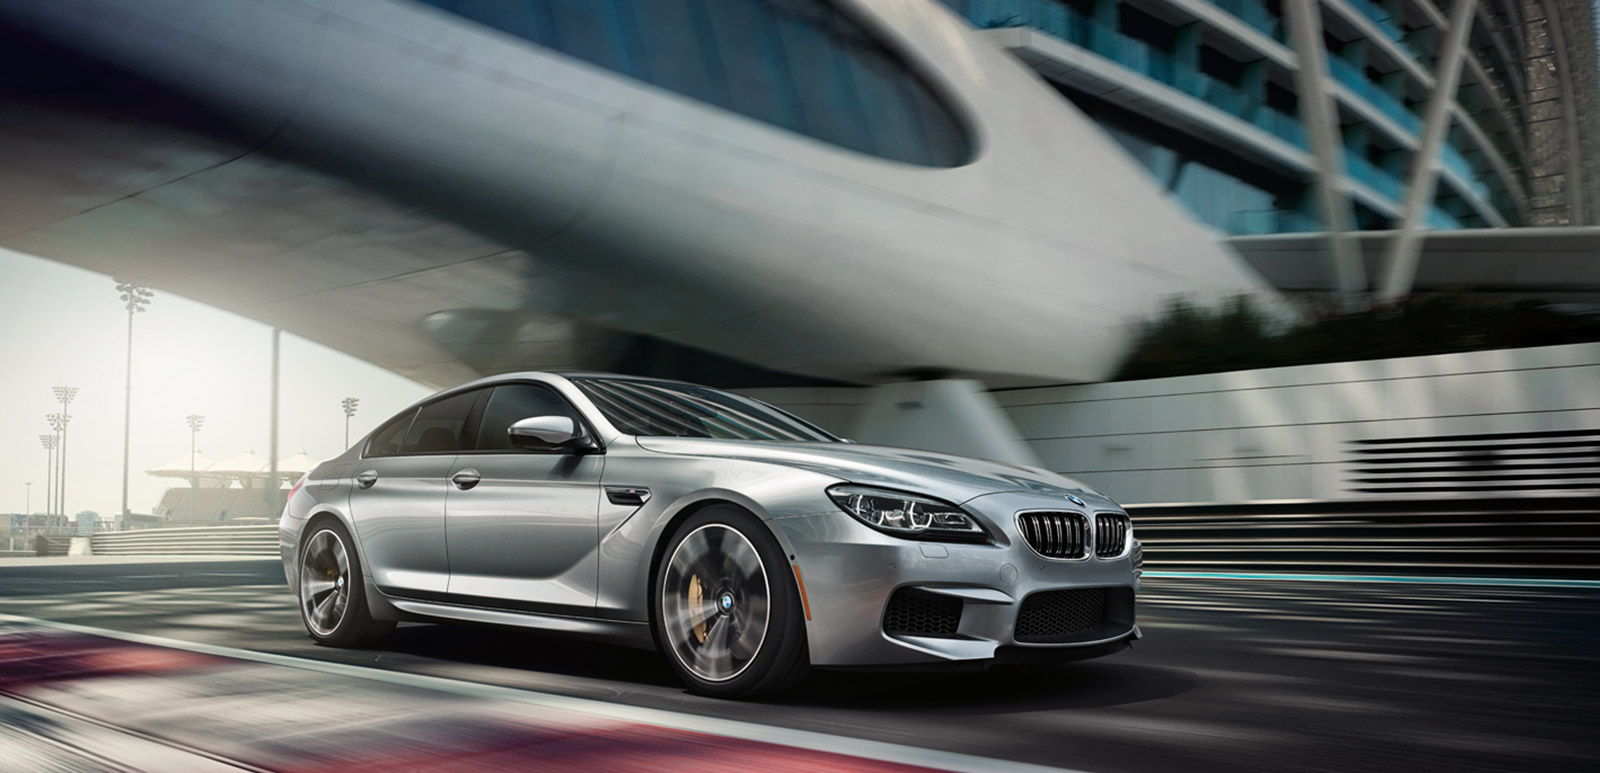 BMW Convertible lease or buy bmw BMW M6 Lease & Price - Cincinnati OH